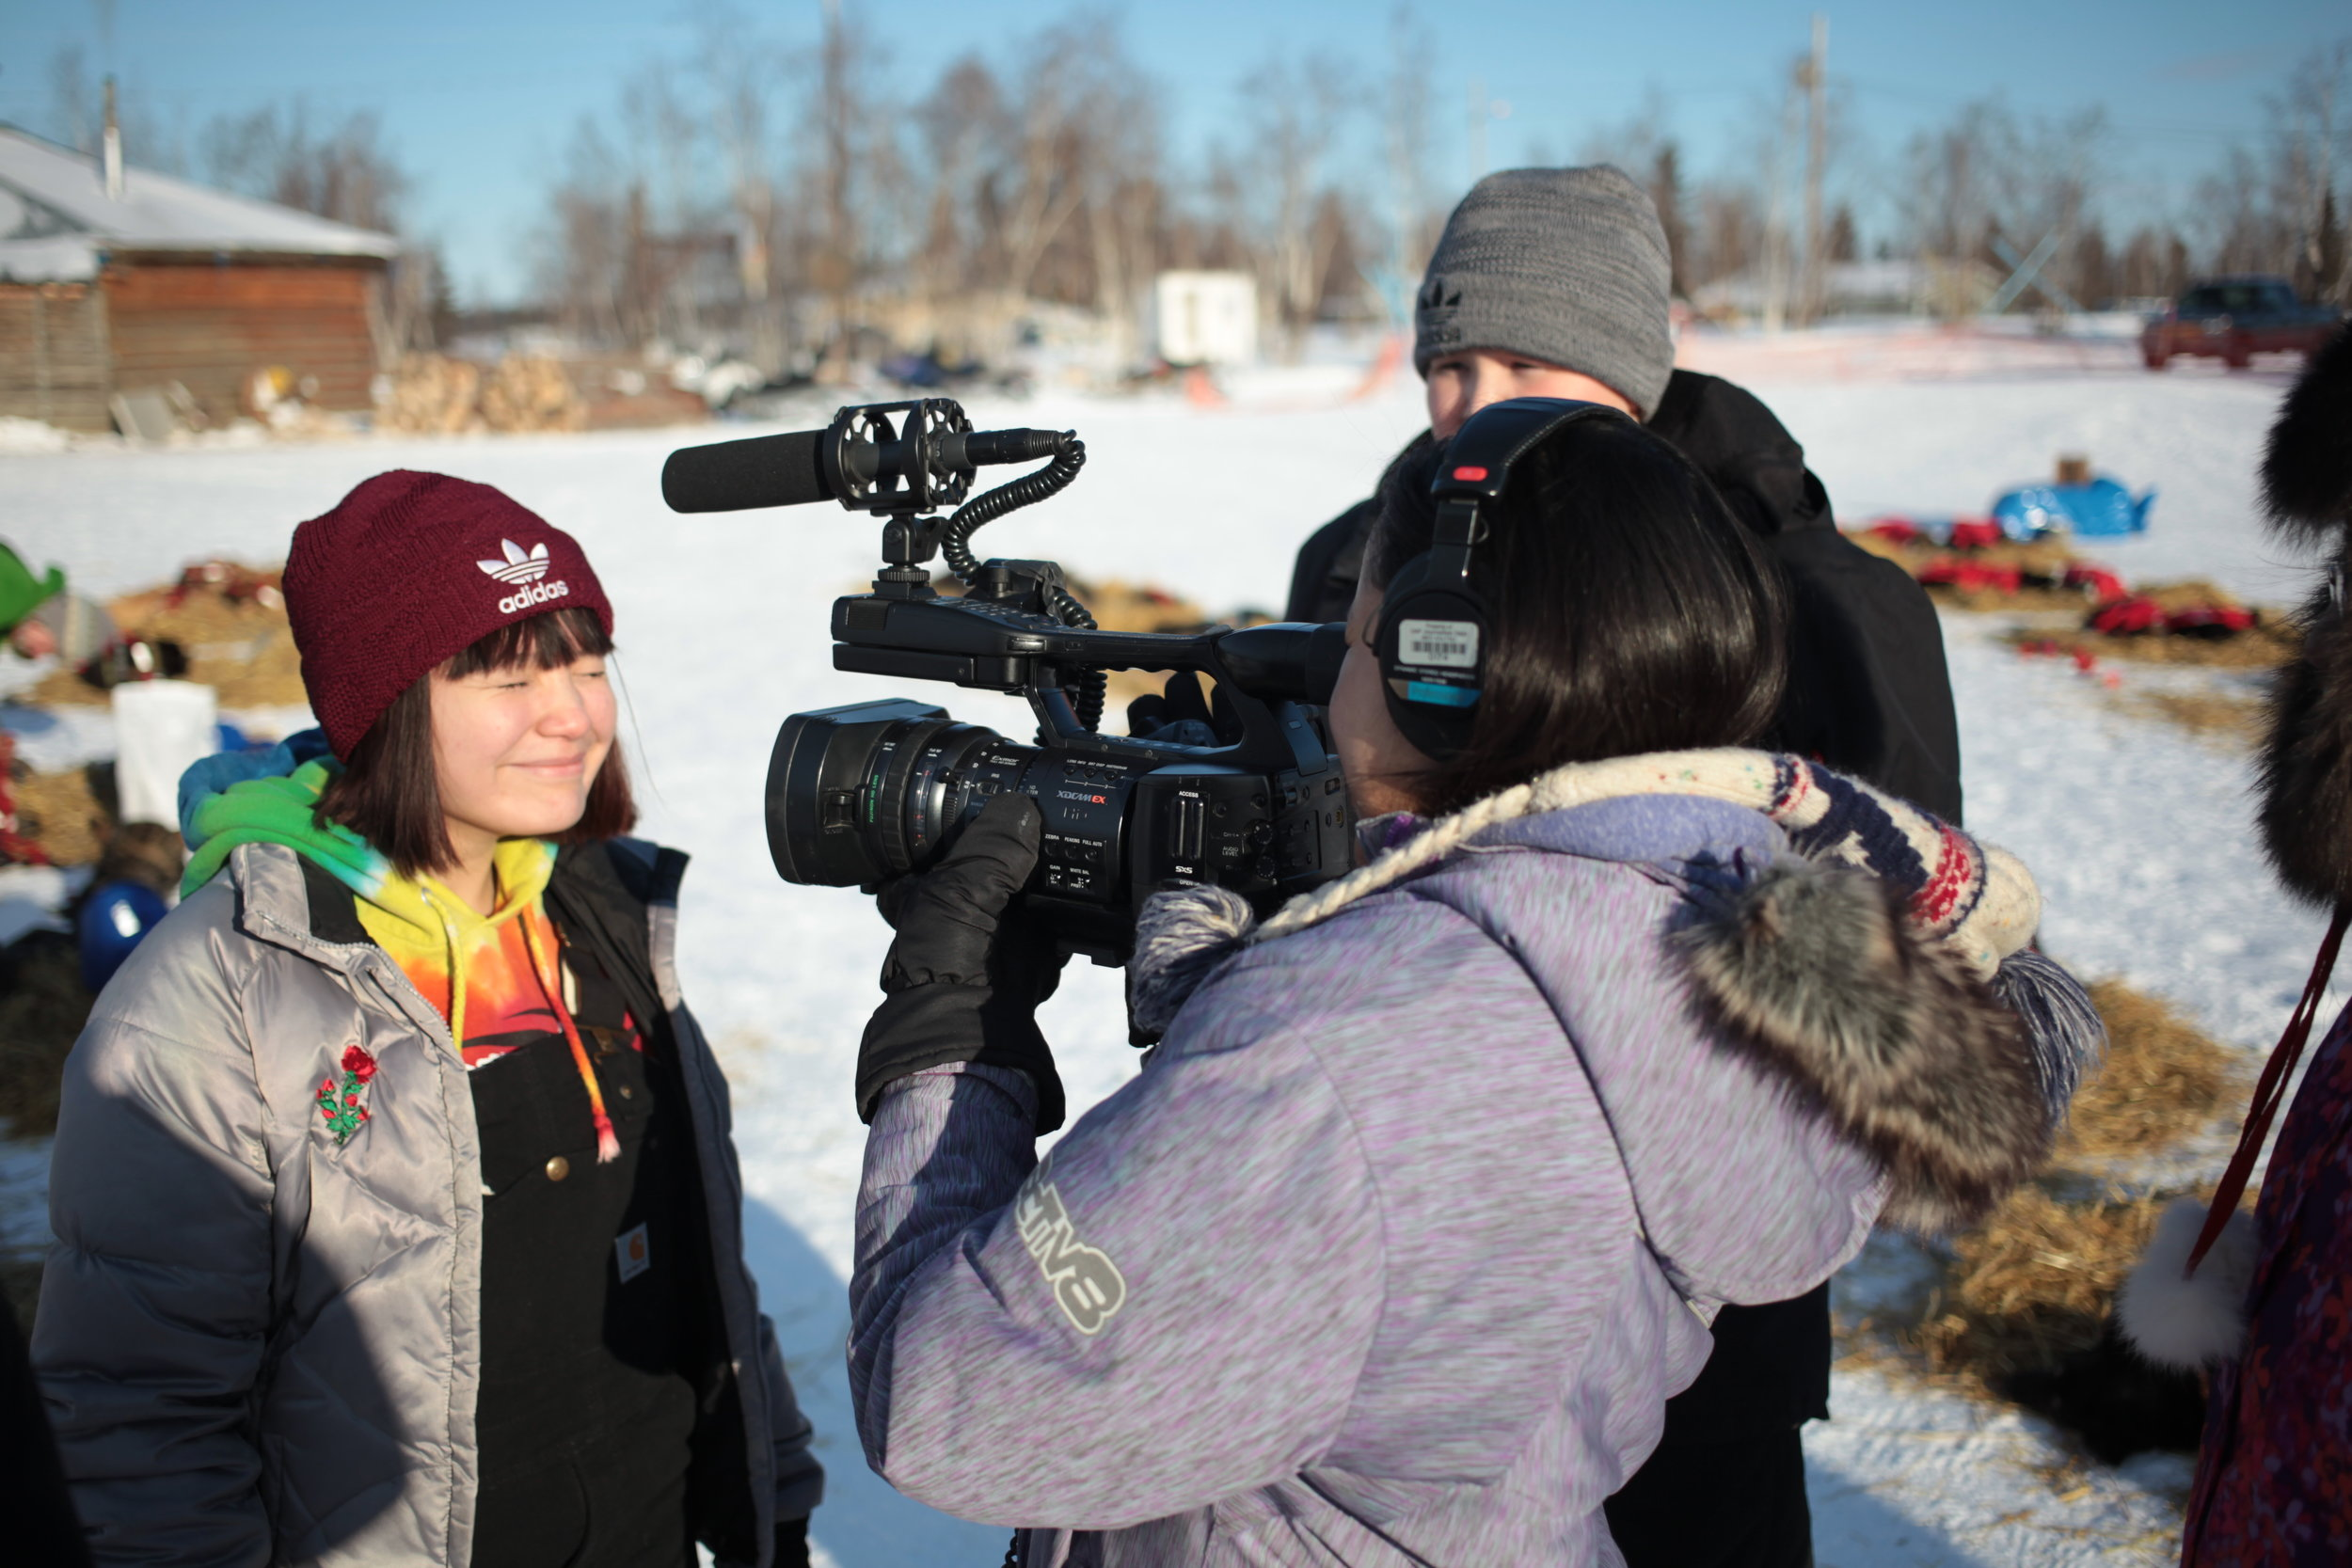 Huslia student being interviewed, March 2017